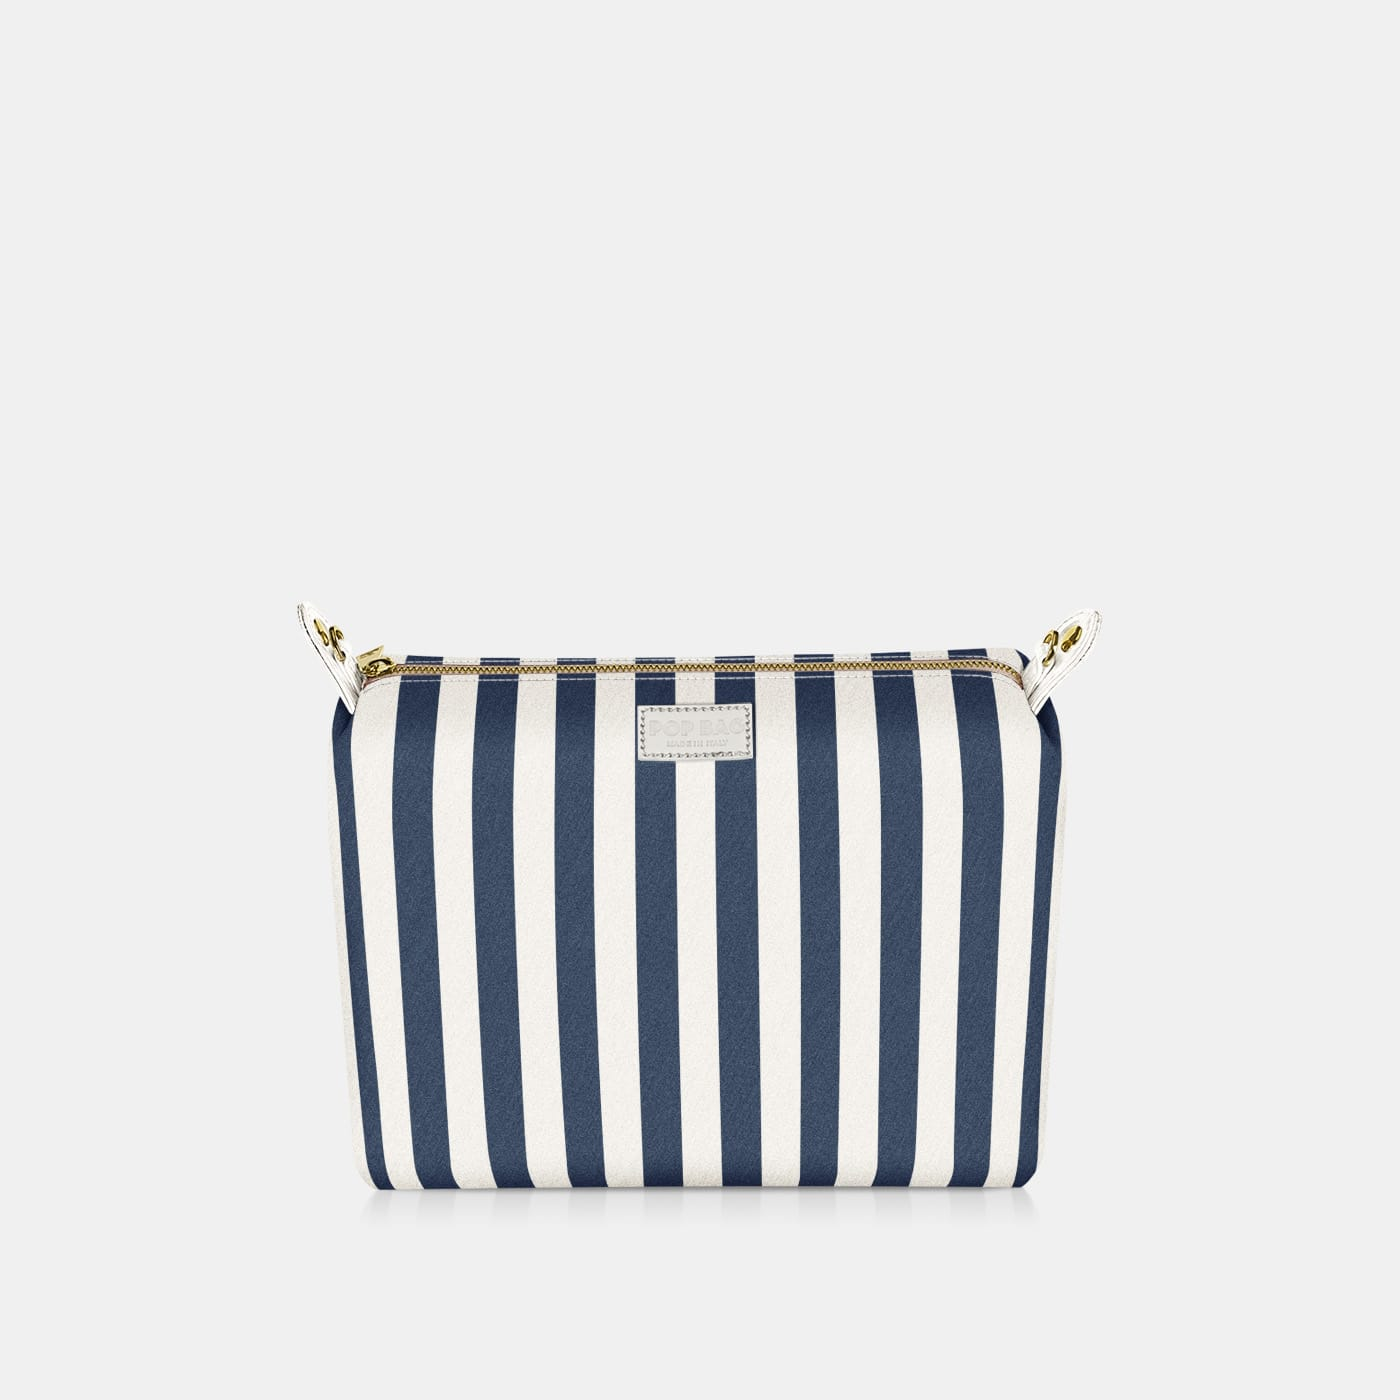 Bag in Bag Striped - Navy Stripe - Small